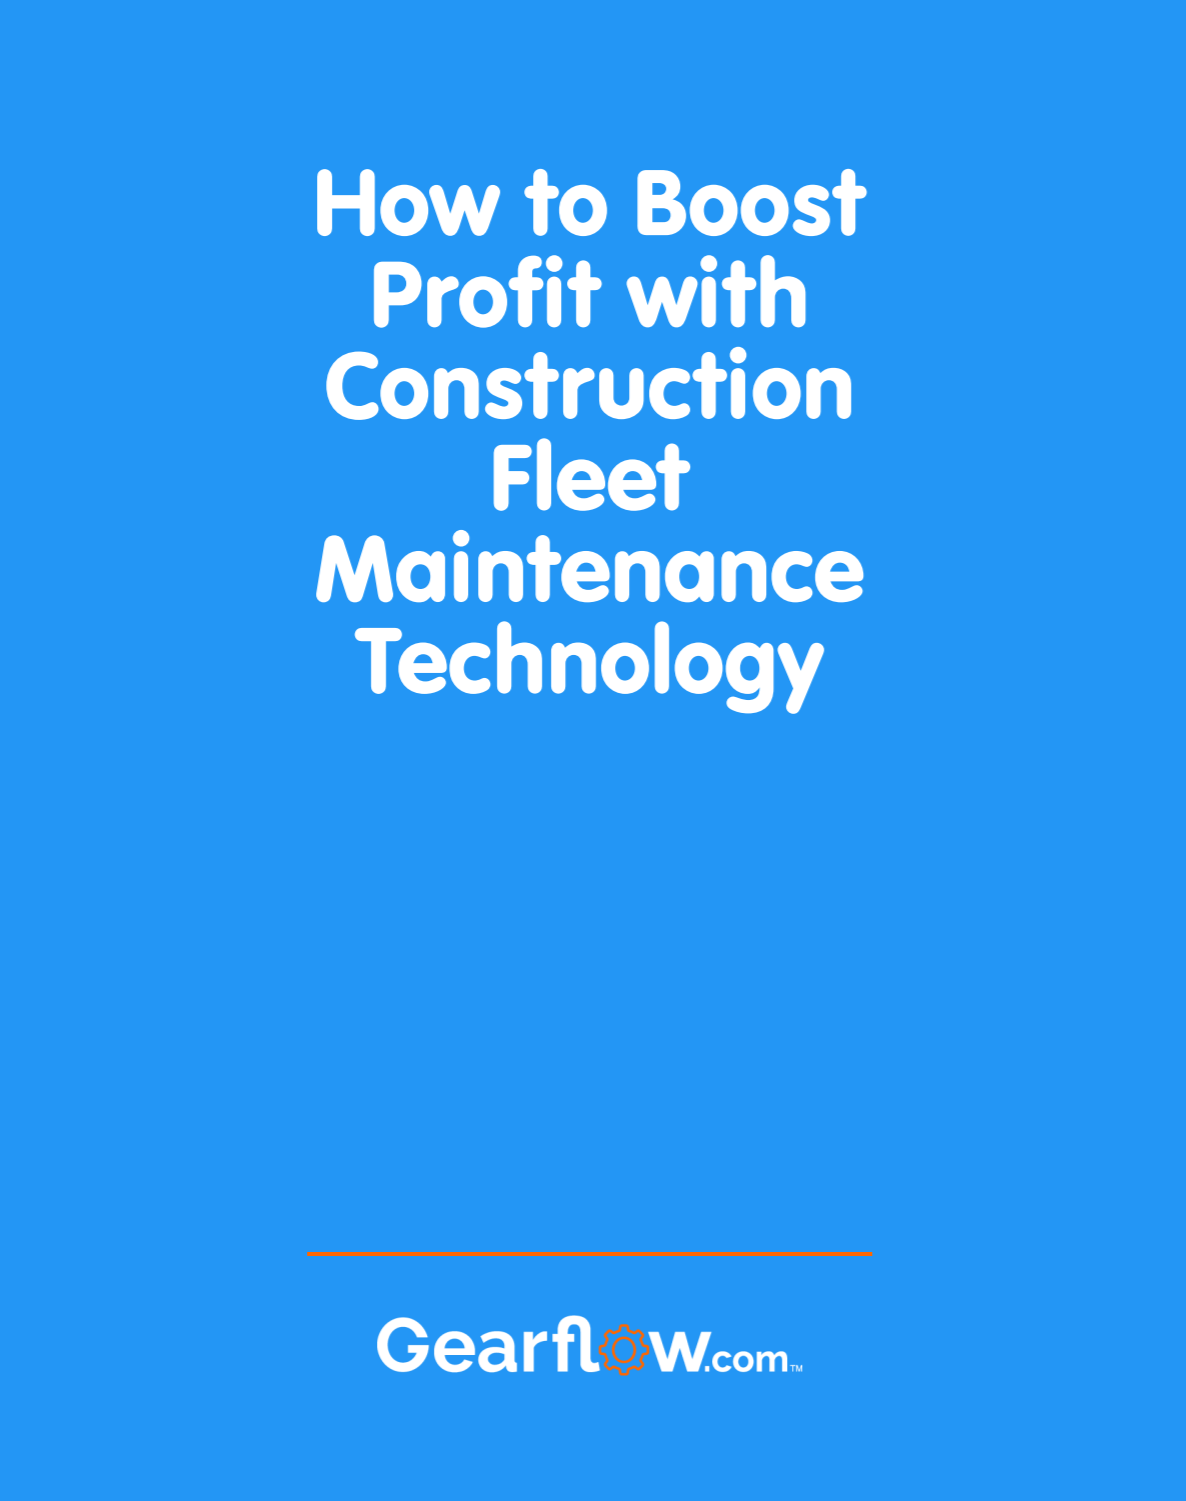 Learn how you can move maintenance from a cost center to a margin maker with this free download.